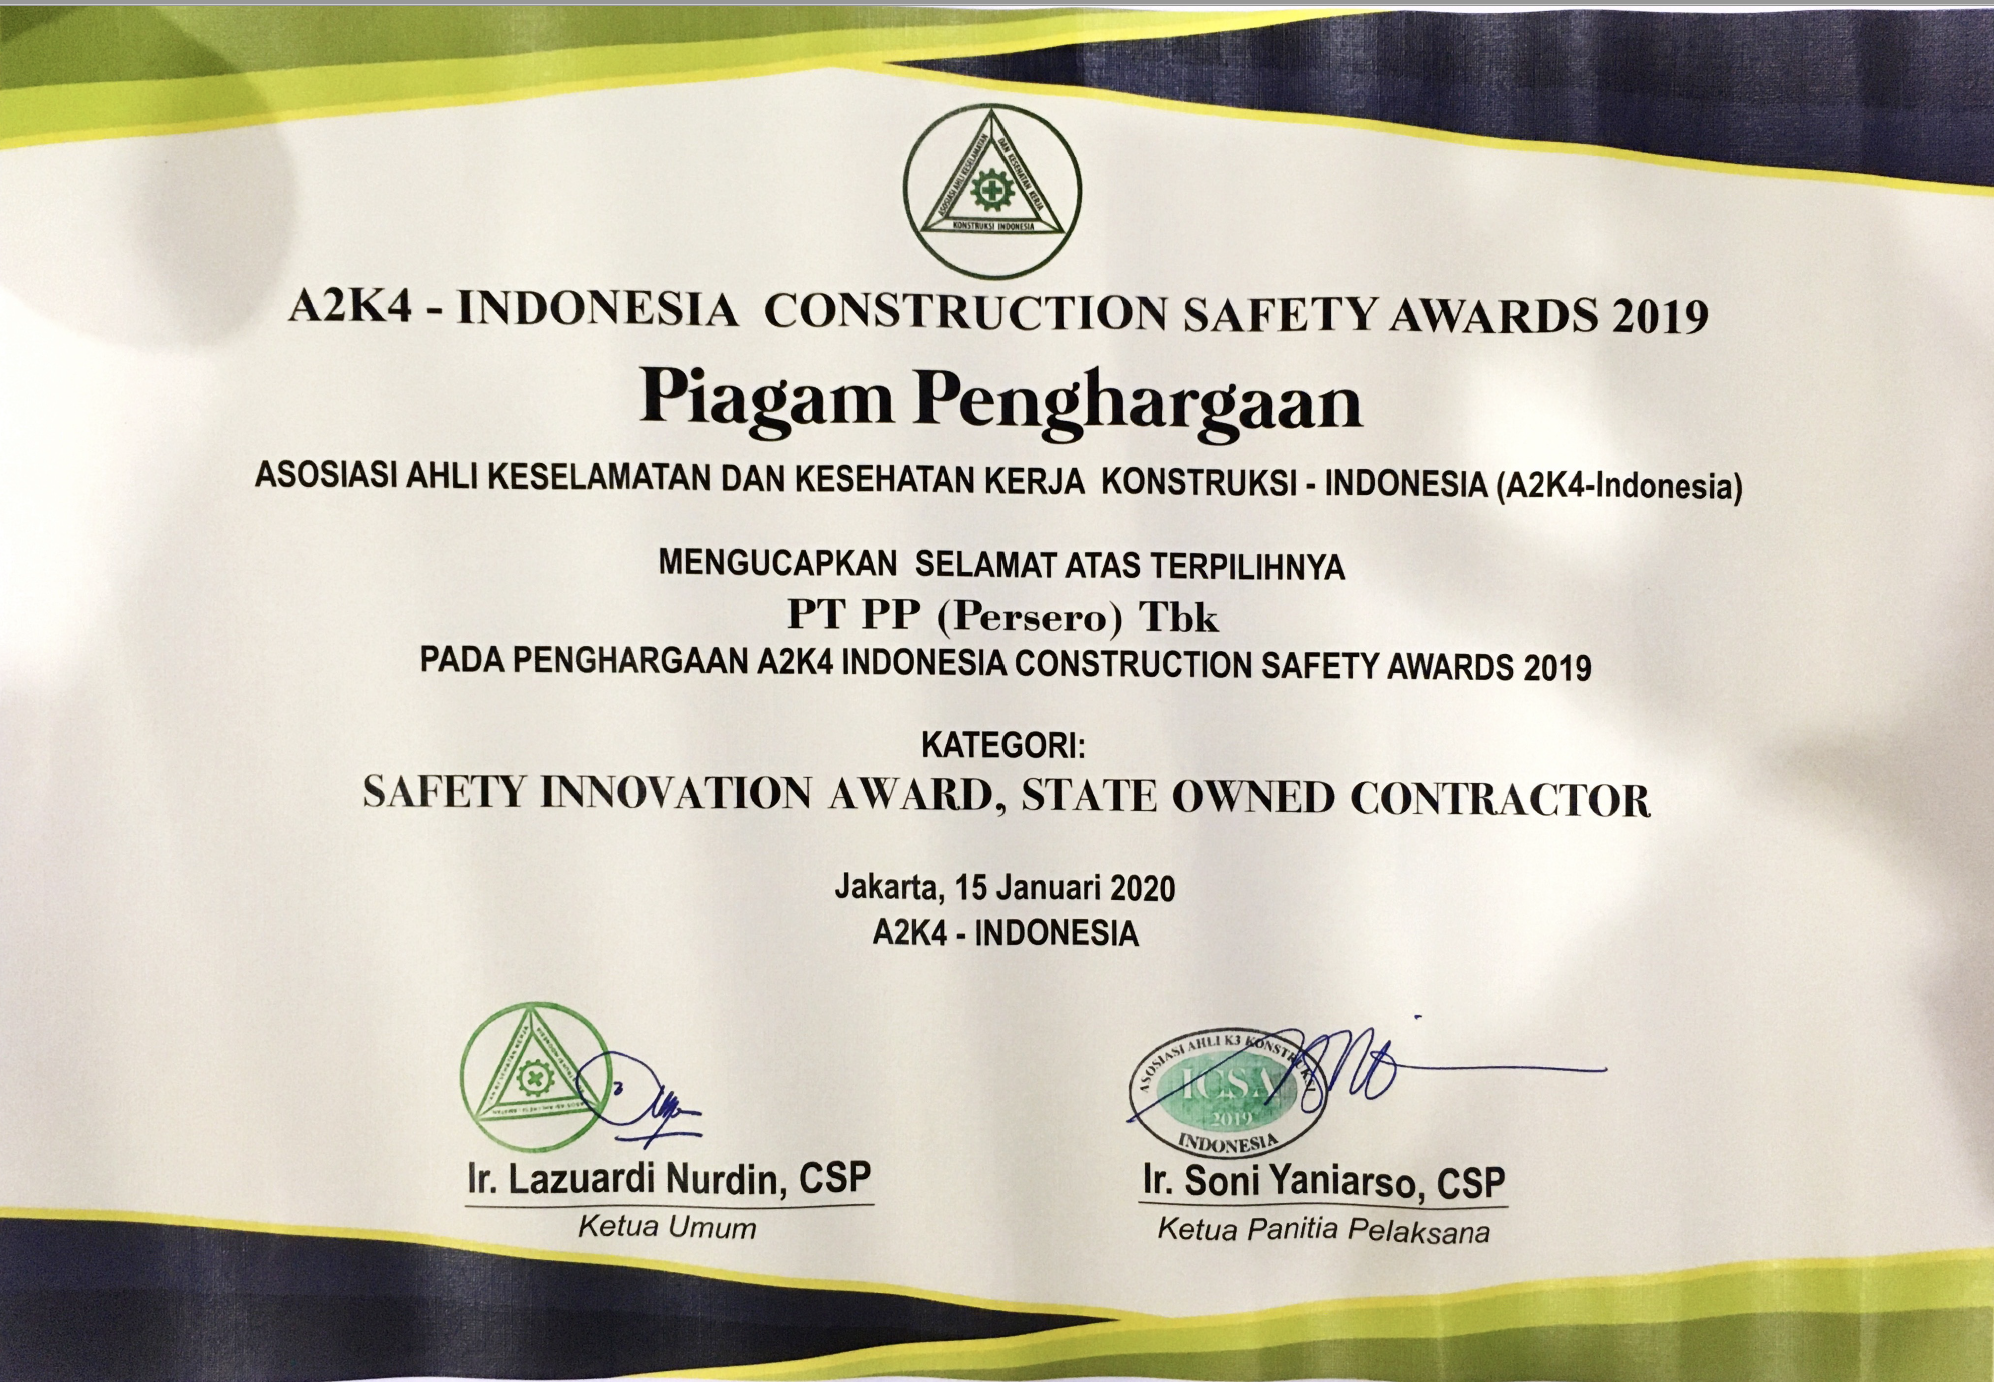 A2K4 - INDONESIA CONSTRUCTION SAFETY AWARDS 2019